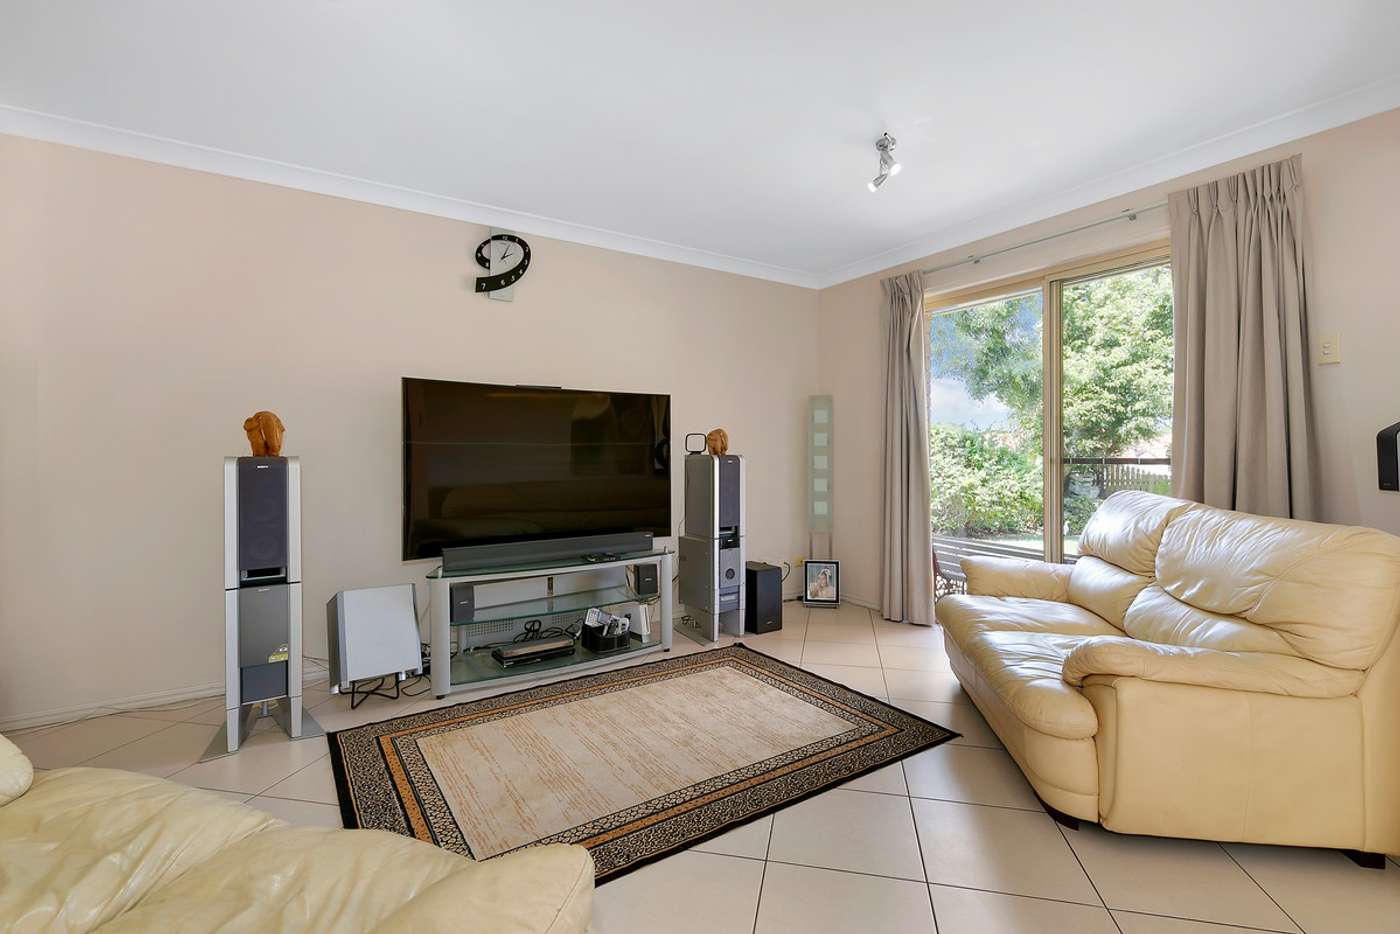 Fifth view of Homely house listing, 1 Kakadu Close, Riverhills QLD 4074